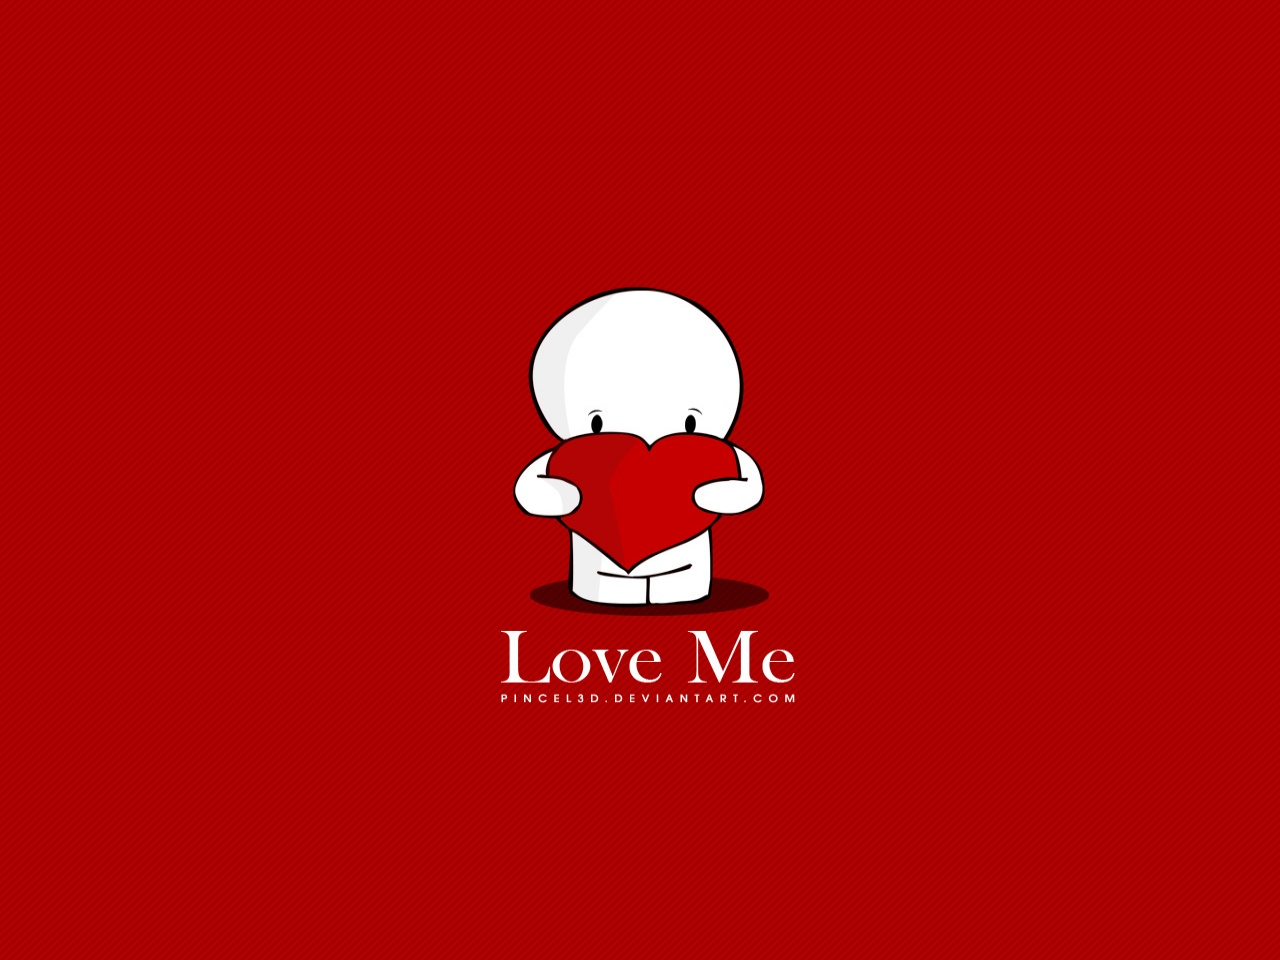 Love Me Wallpaper in HD for Desktop